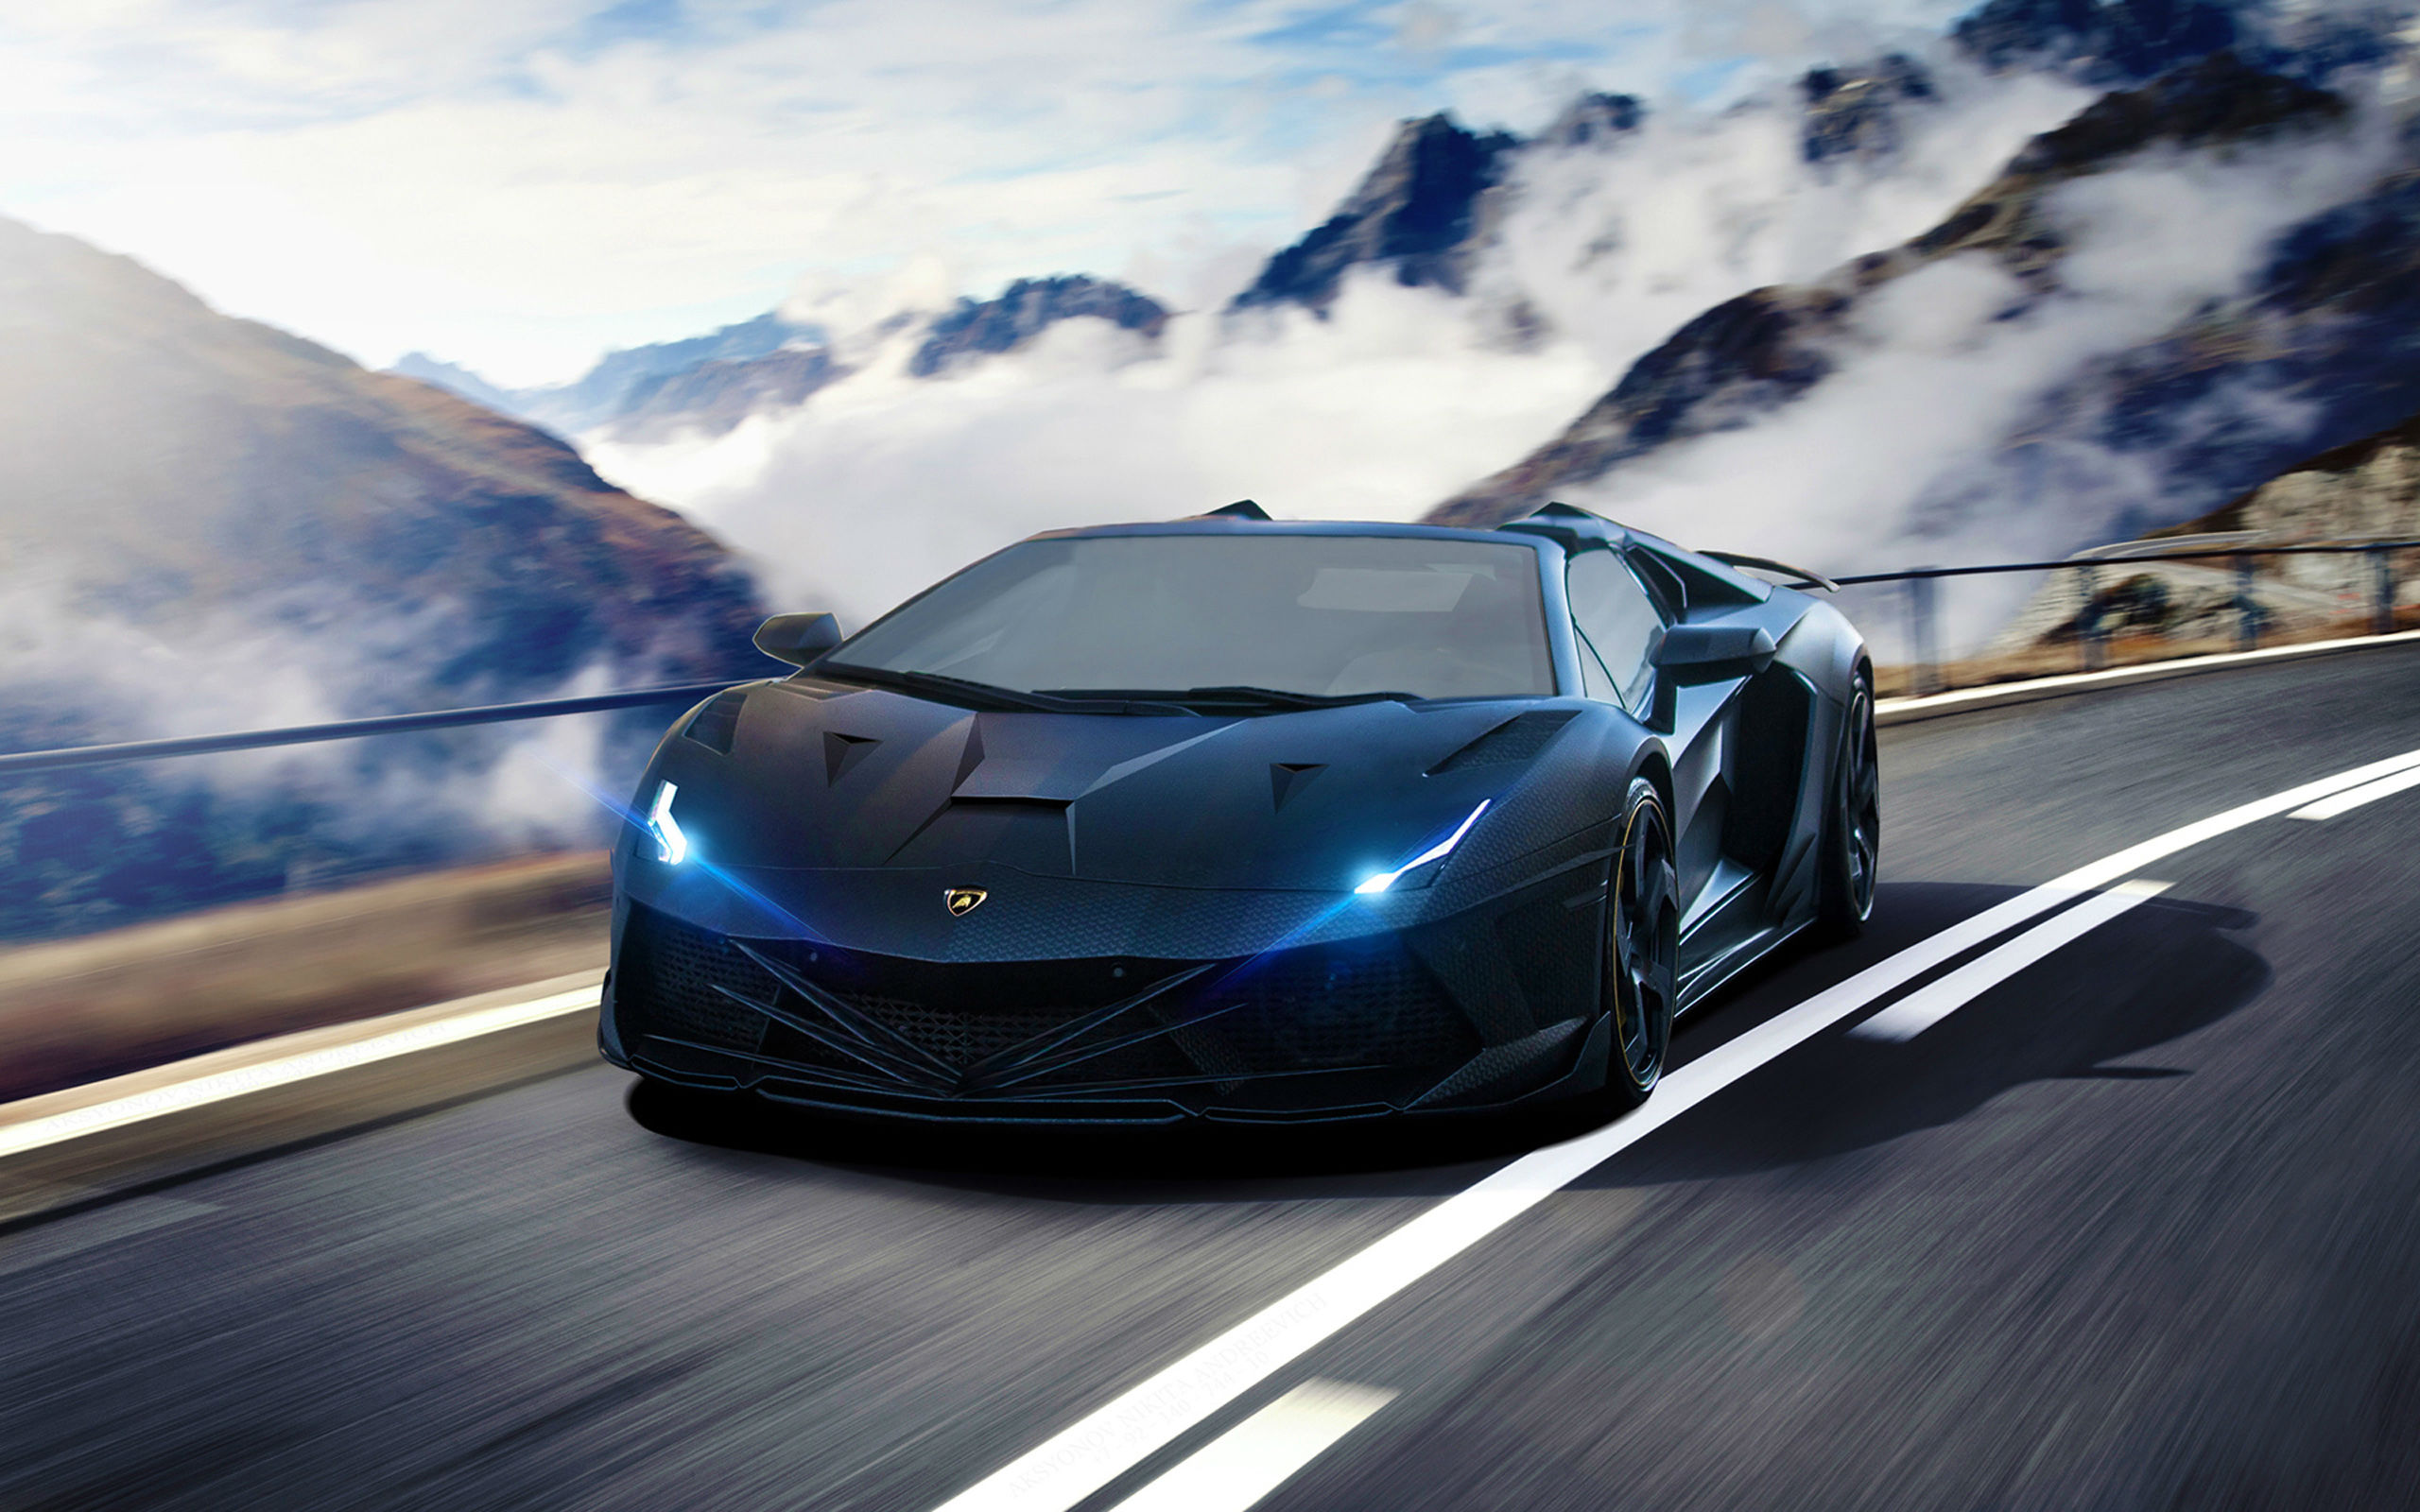 SuperCars HD Wallpapers 1080p WallpapersCharlie 2560x1600